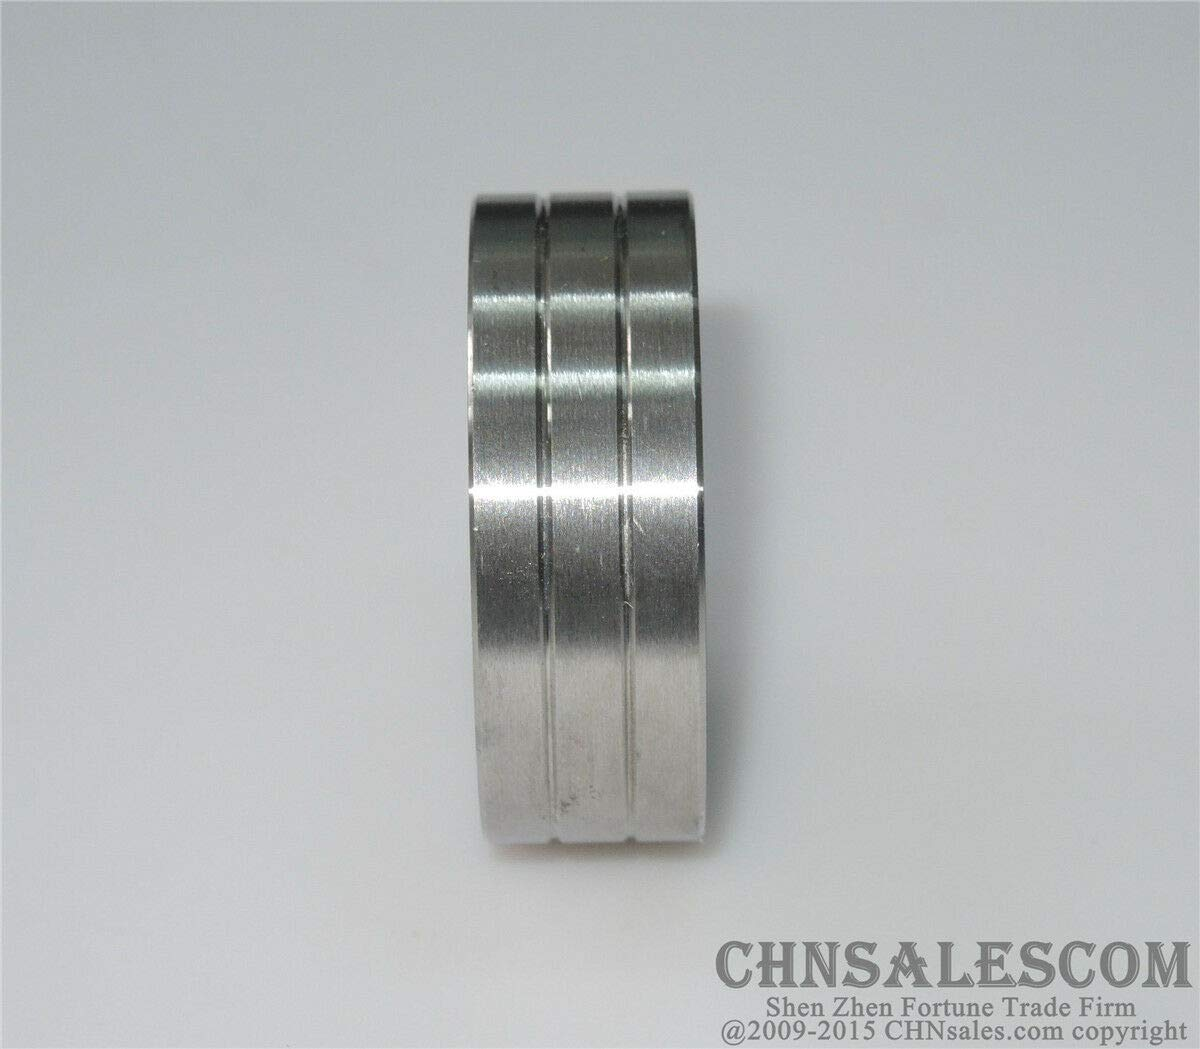 CHNsalescom Wire Feed Drive Roller V Groove 1.2mm 0.045 MIG MAG Miller Welding Machine